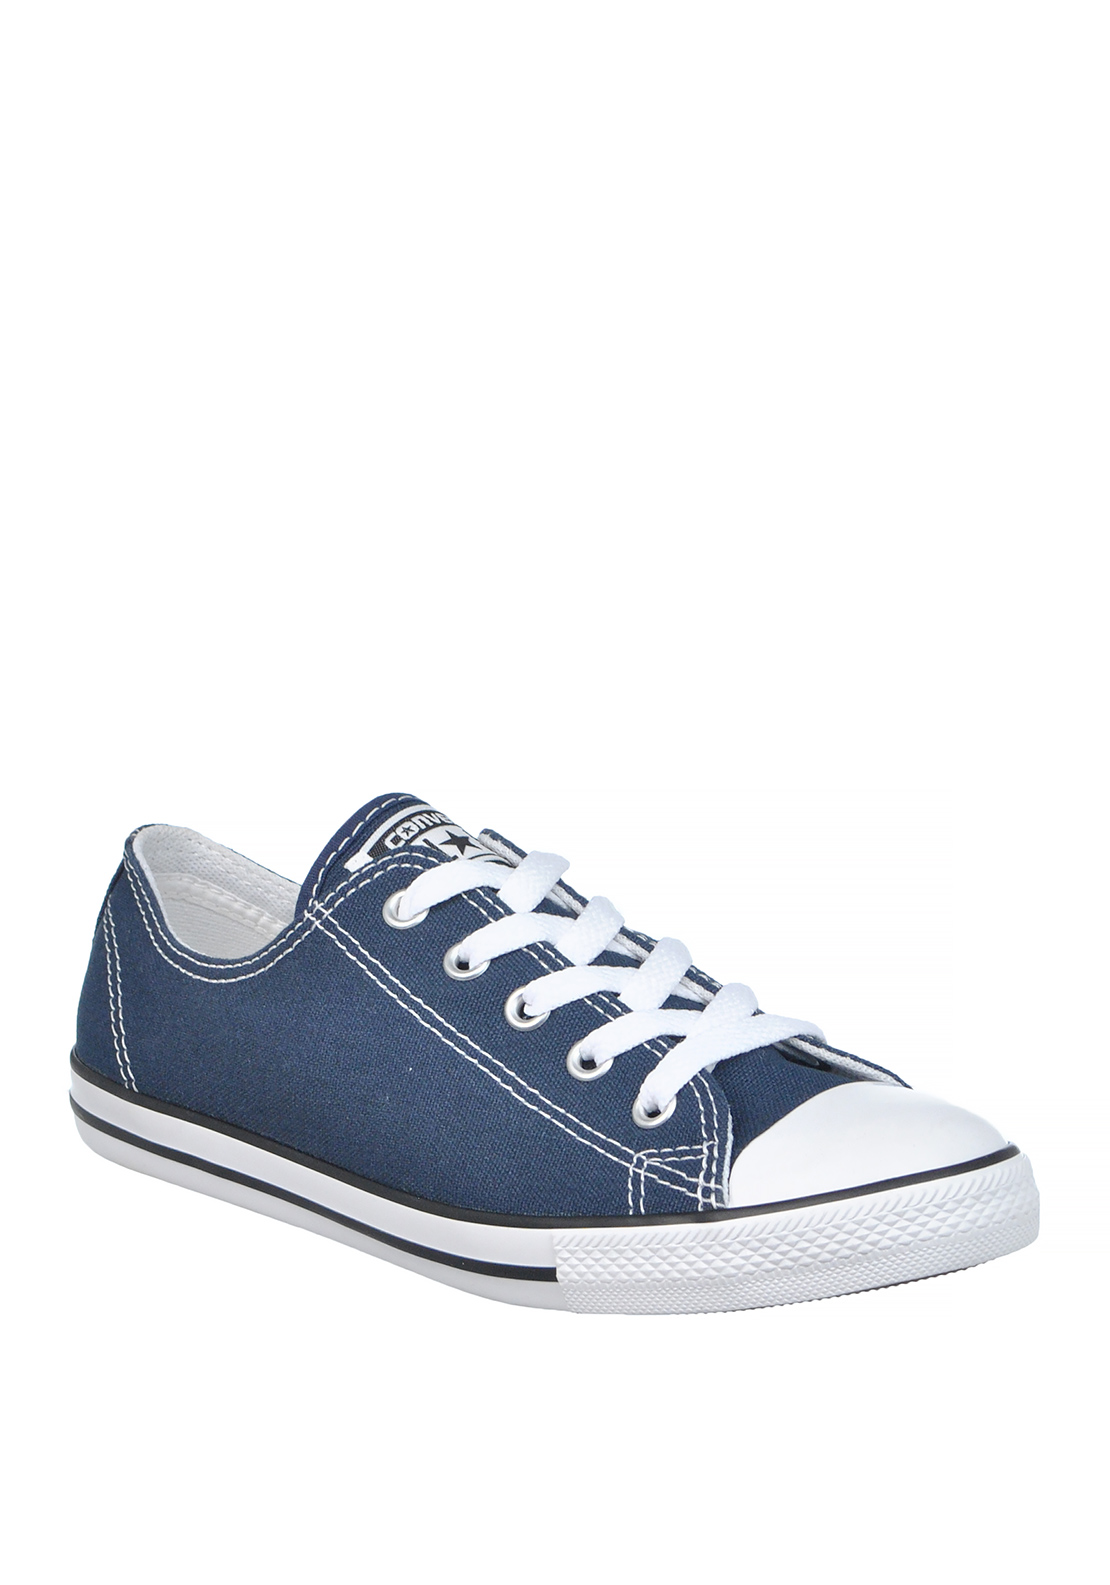 Converse Womens All Star Dainty OX Trainers, Navy